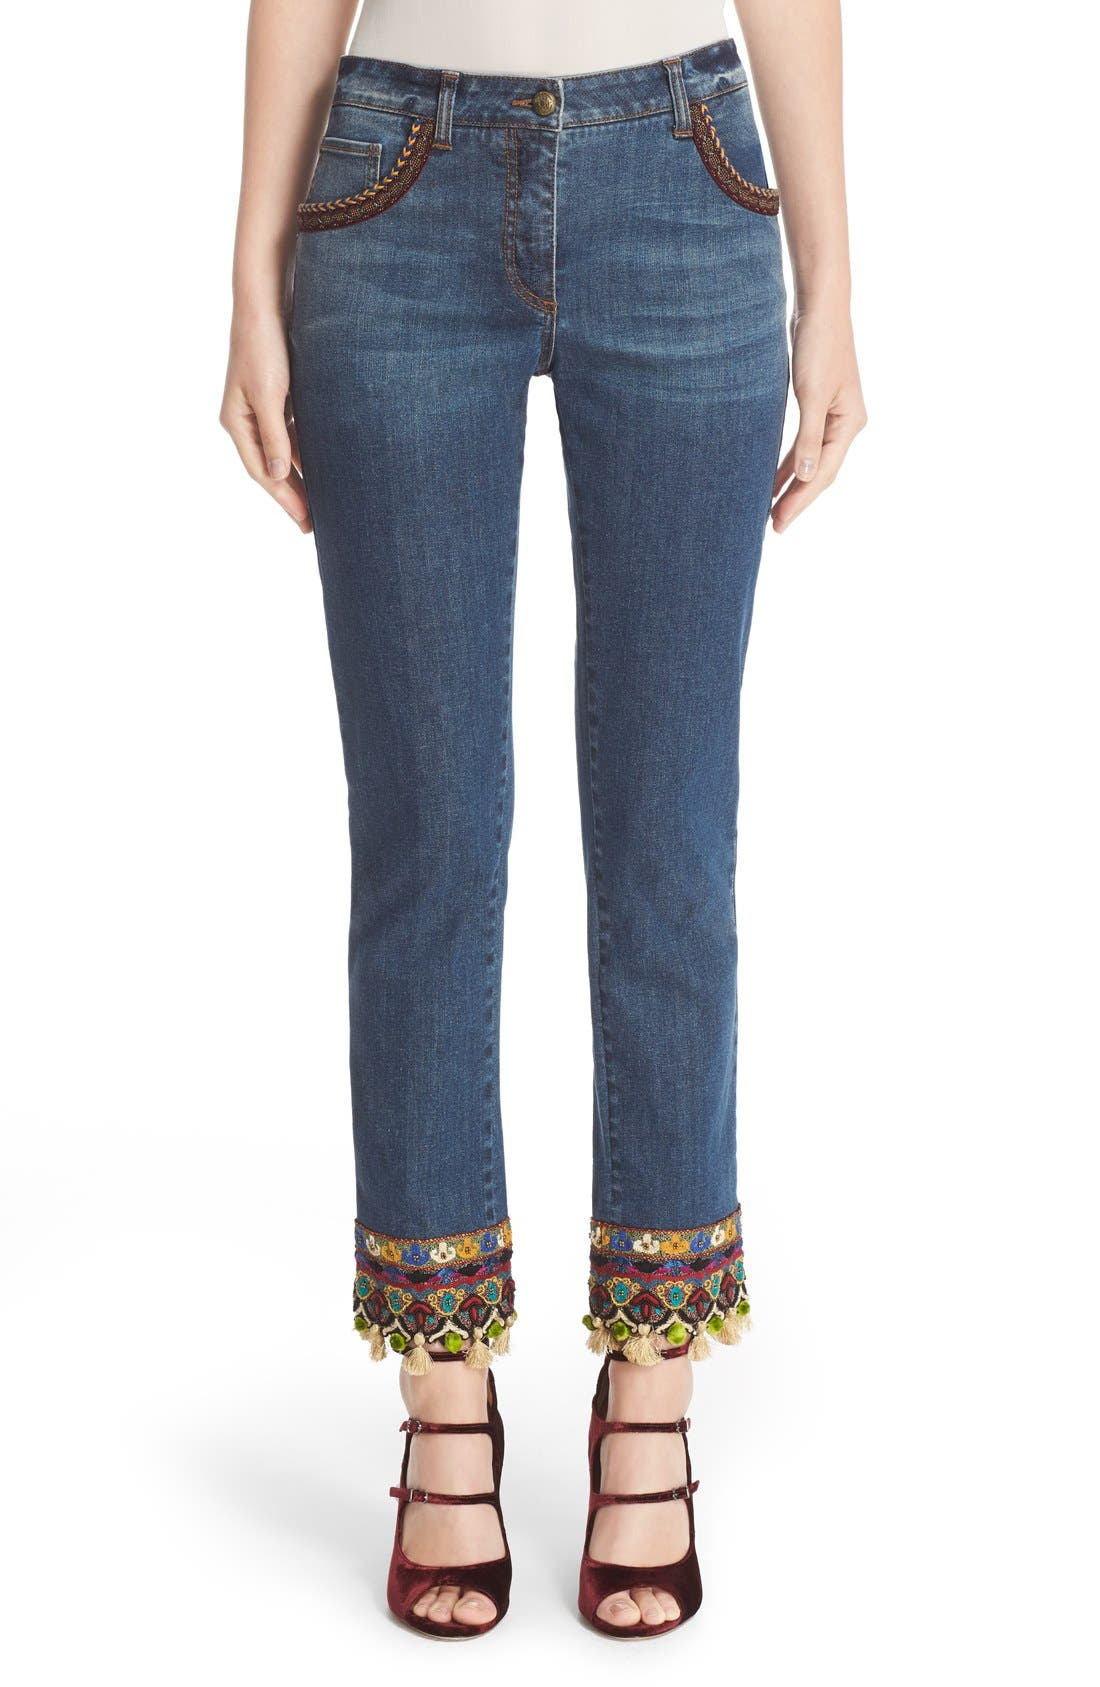 ETRO Beaded & Embroidered Crop Jeans